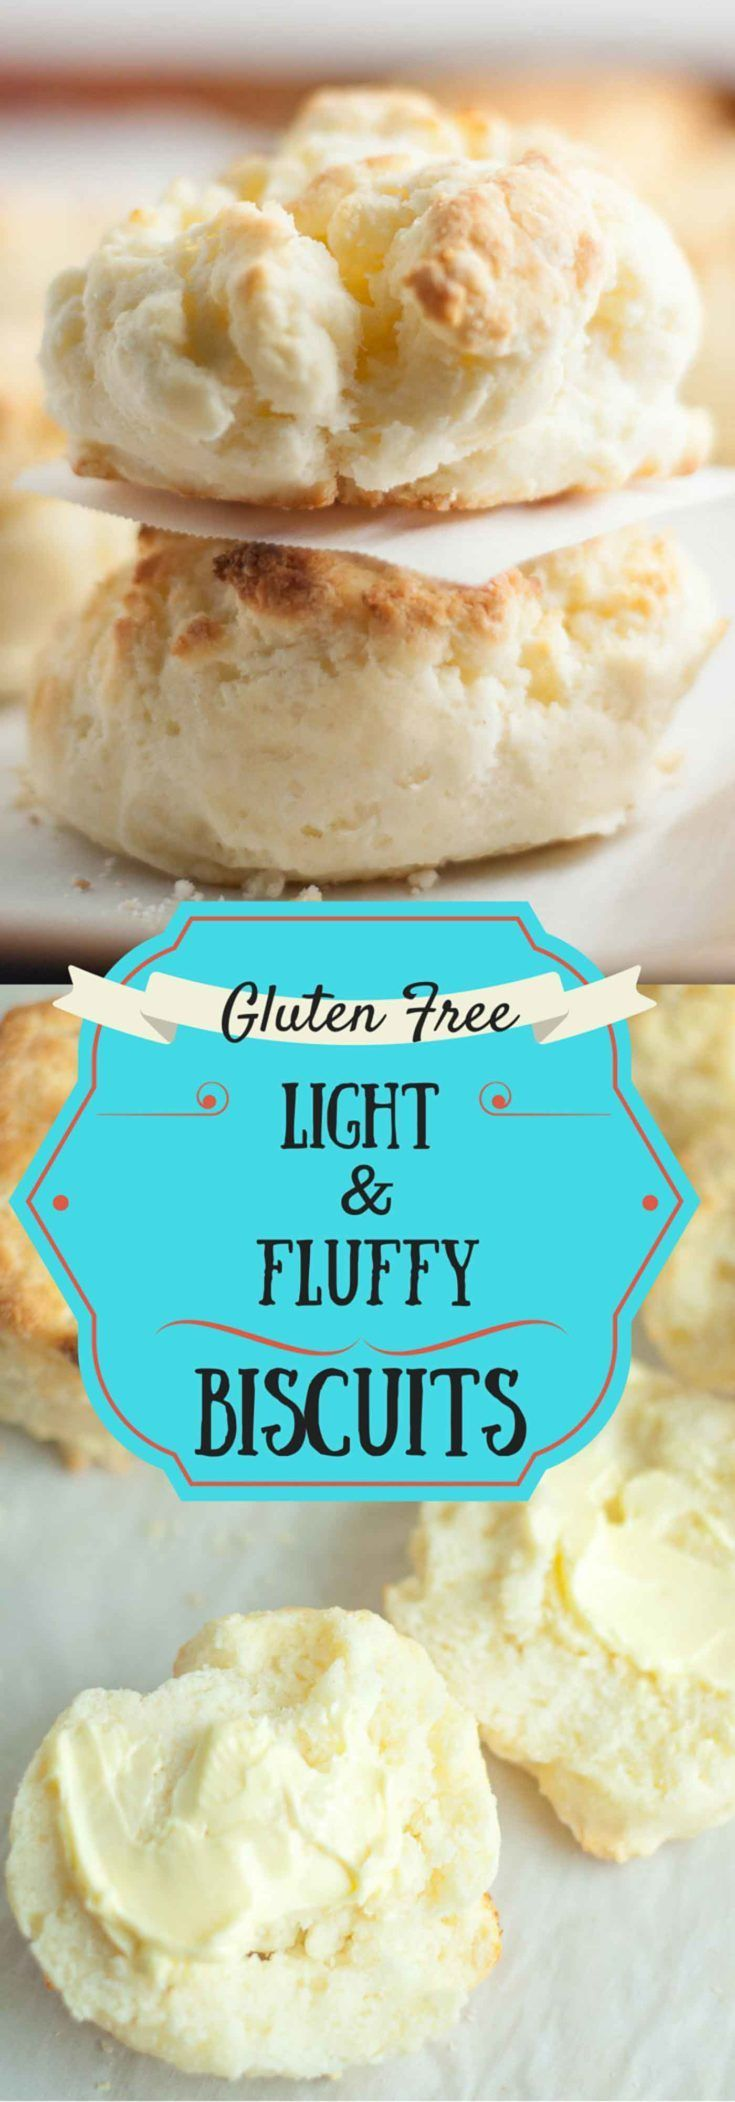 Light and Fluffy (Gluten Free) Biscuits